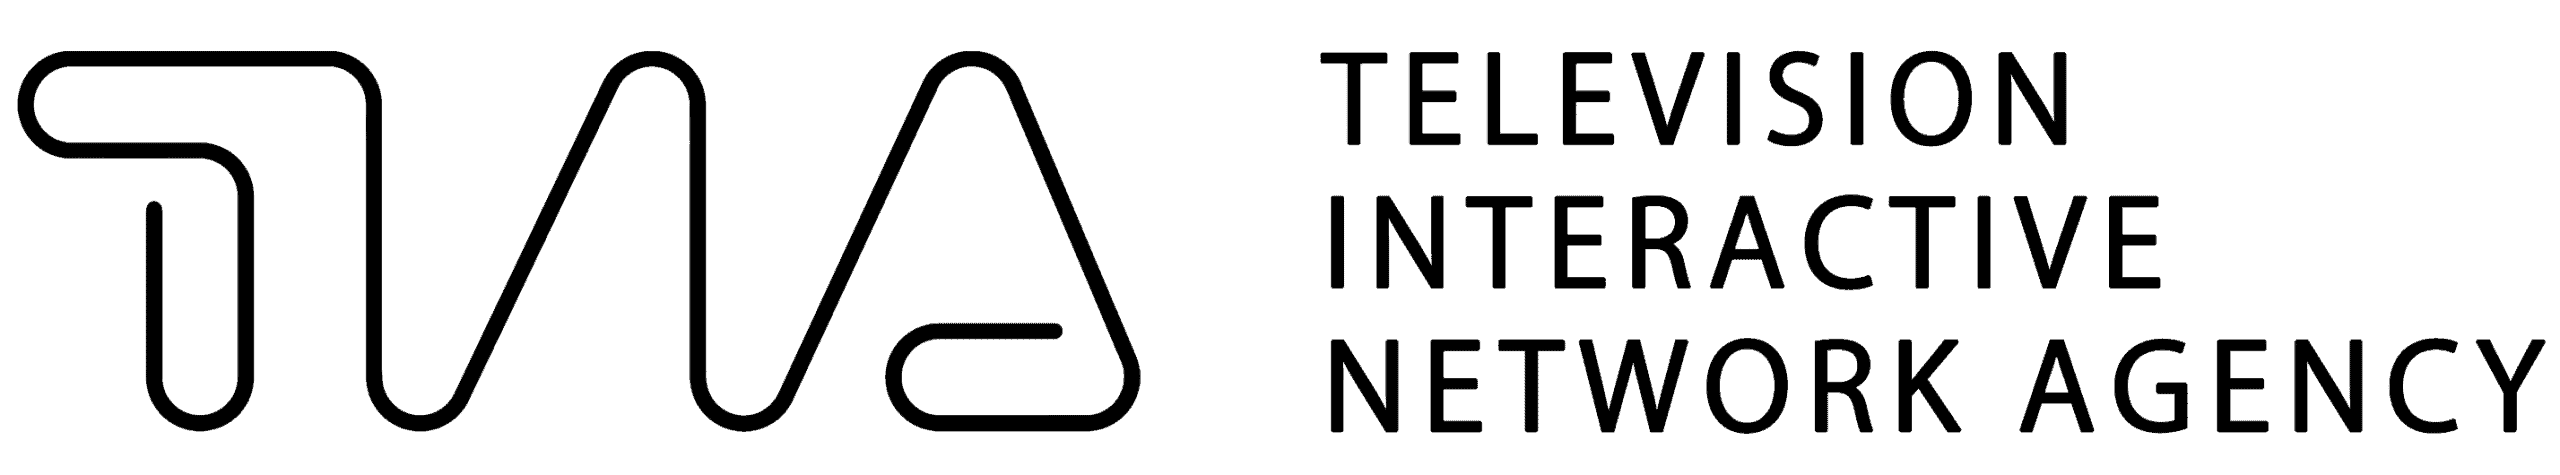 Television Interactive Network Agency